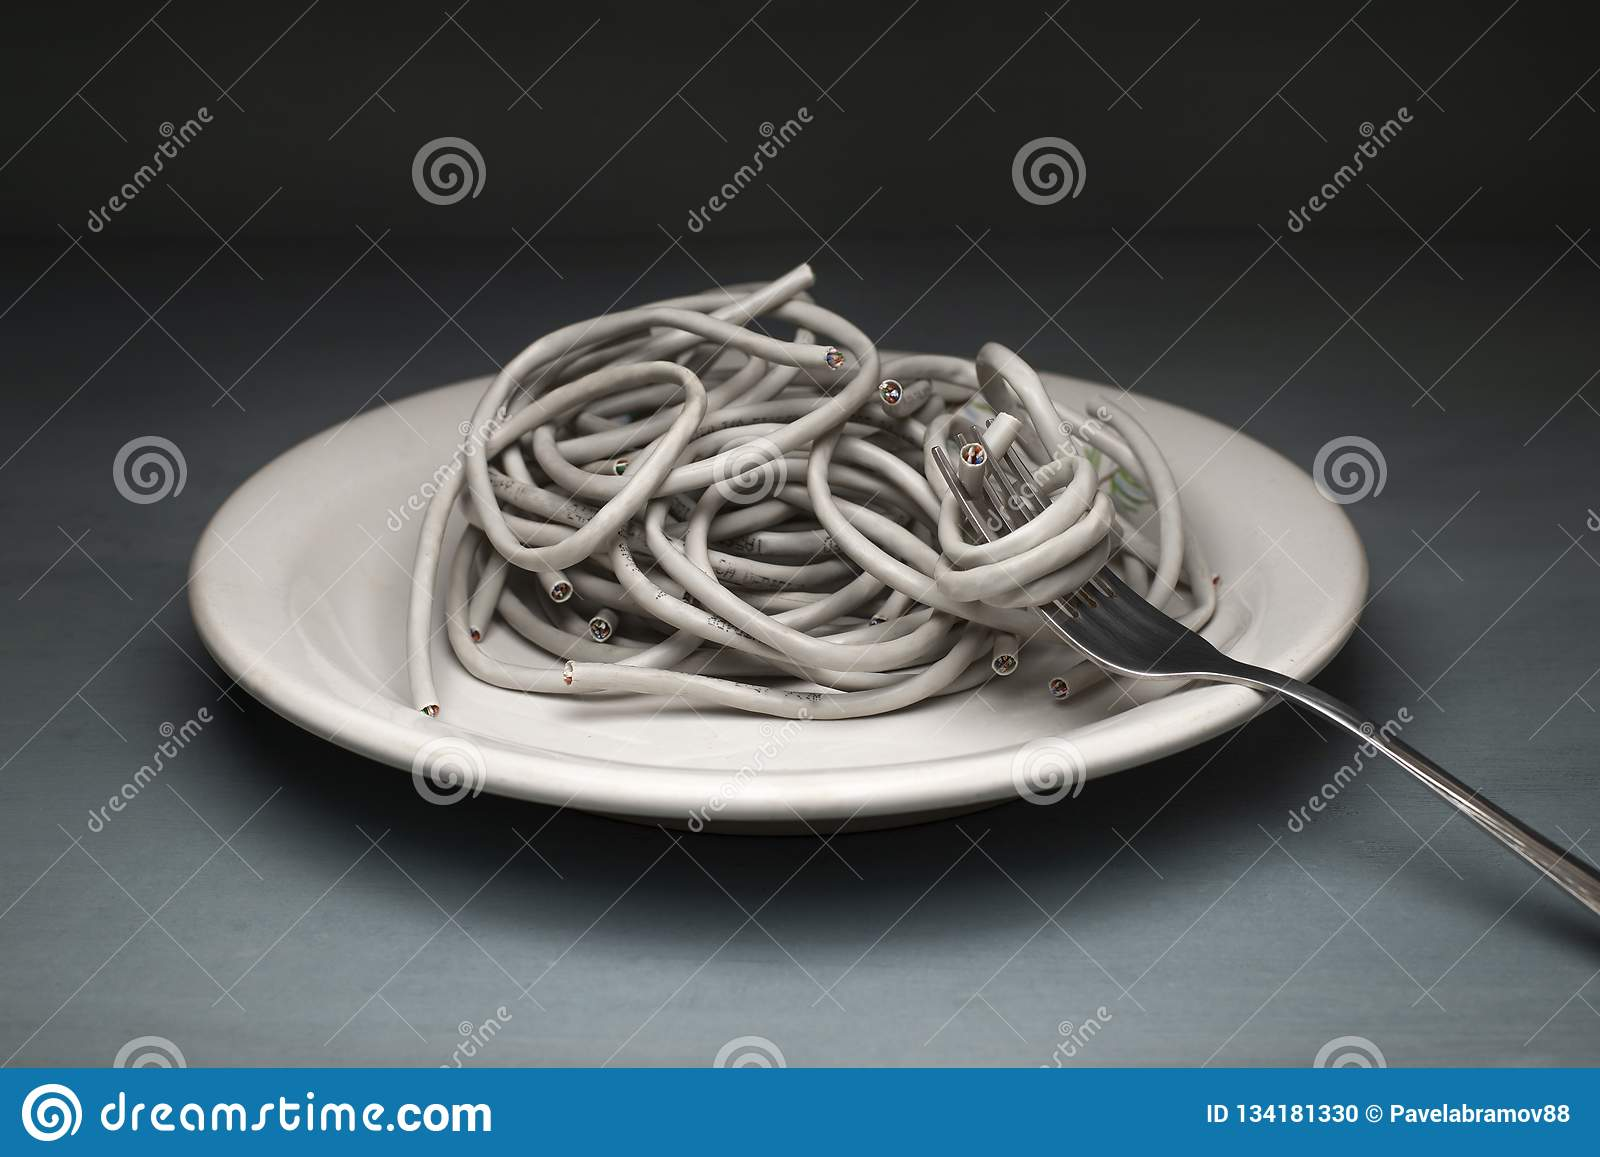 Twisted-pair ADSL in the form of paste wrapped around a fork